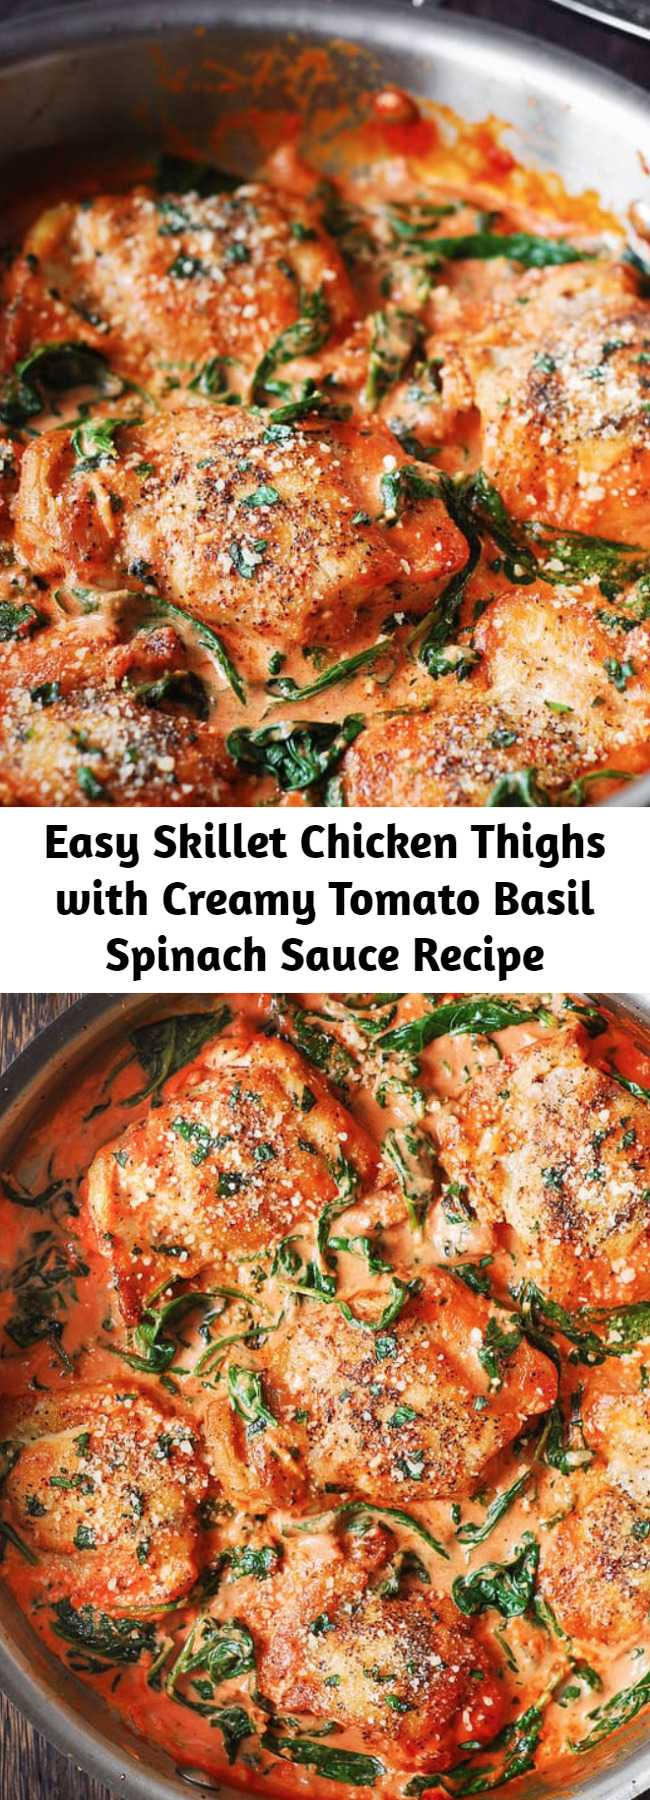 Easy Skillet Chicken Thighs with Creamy Tomato Basil Spinach Sauce Recipe - The whole recipe takes 30 minutes from start to finish! Boneless skinless chicken thighs are seared to perfection and served in a creamy tomato basil sauce with spinach, sprinkled with grated Parmesan cheese. Easy dinner that a whole family will love! #chicken #chickenthighs #chickendinner #tomatobasil #tomatobasilsauce #spinachsauce #spinach #basil #glutenfree